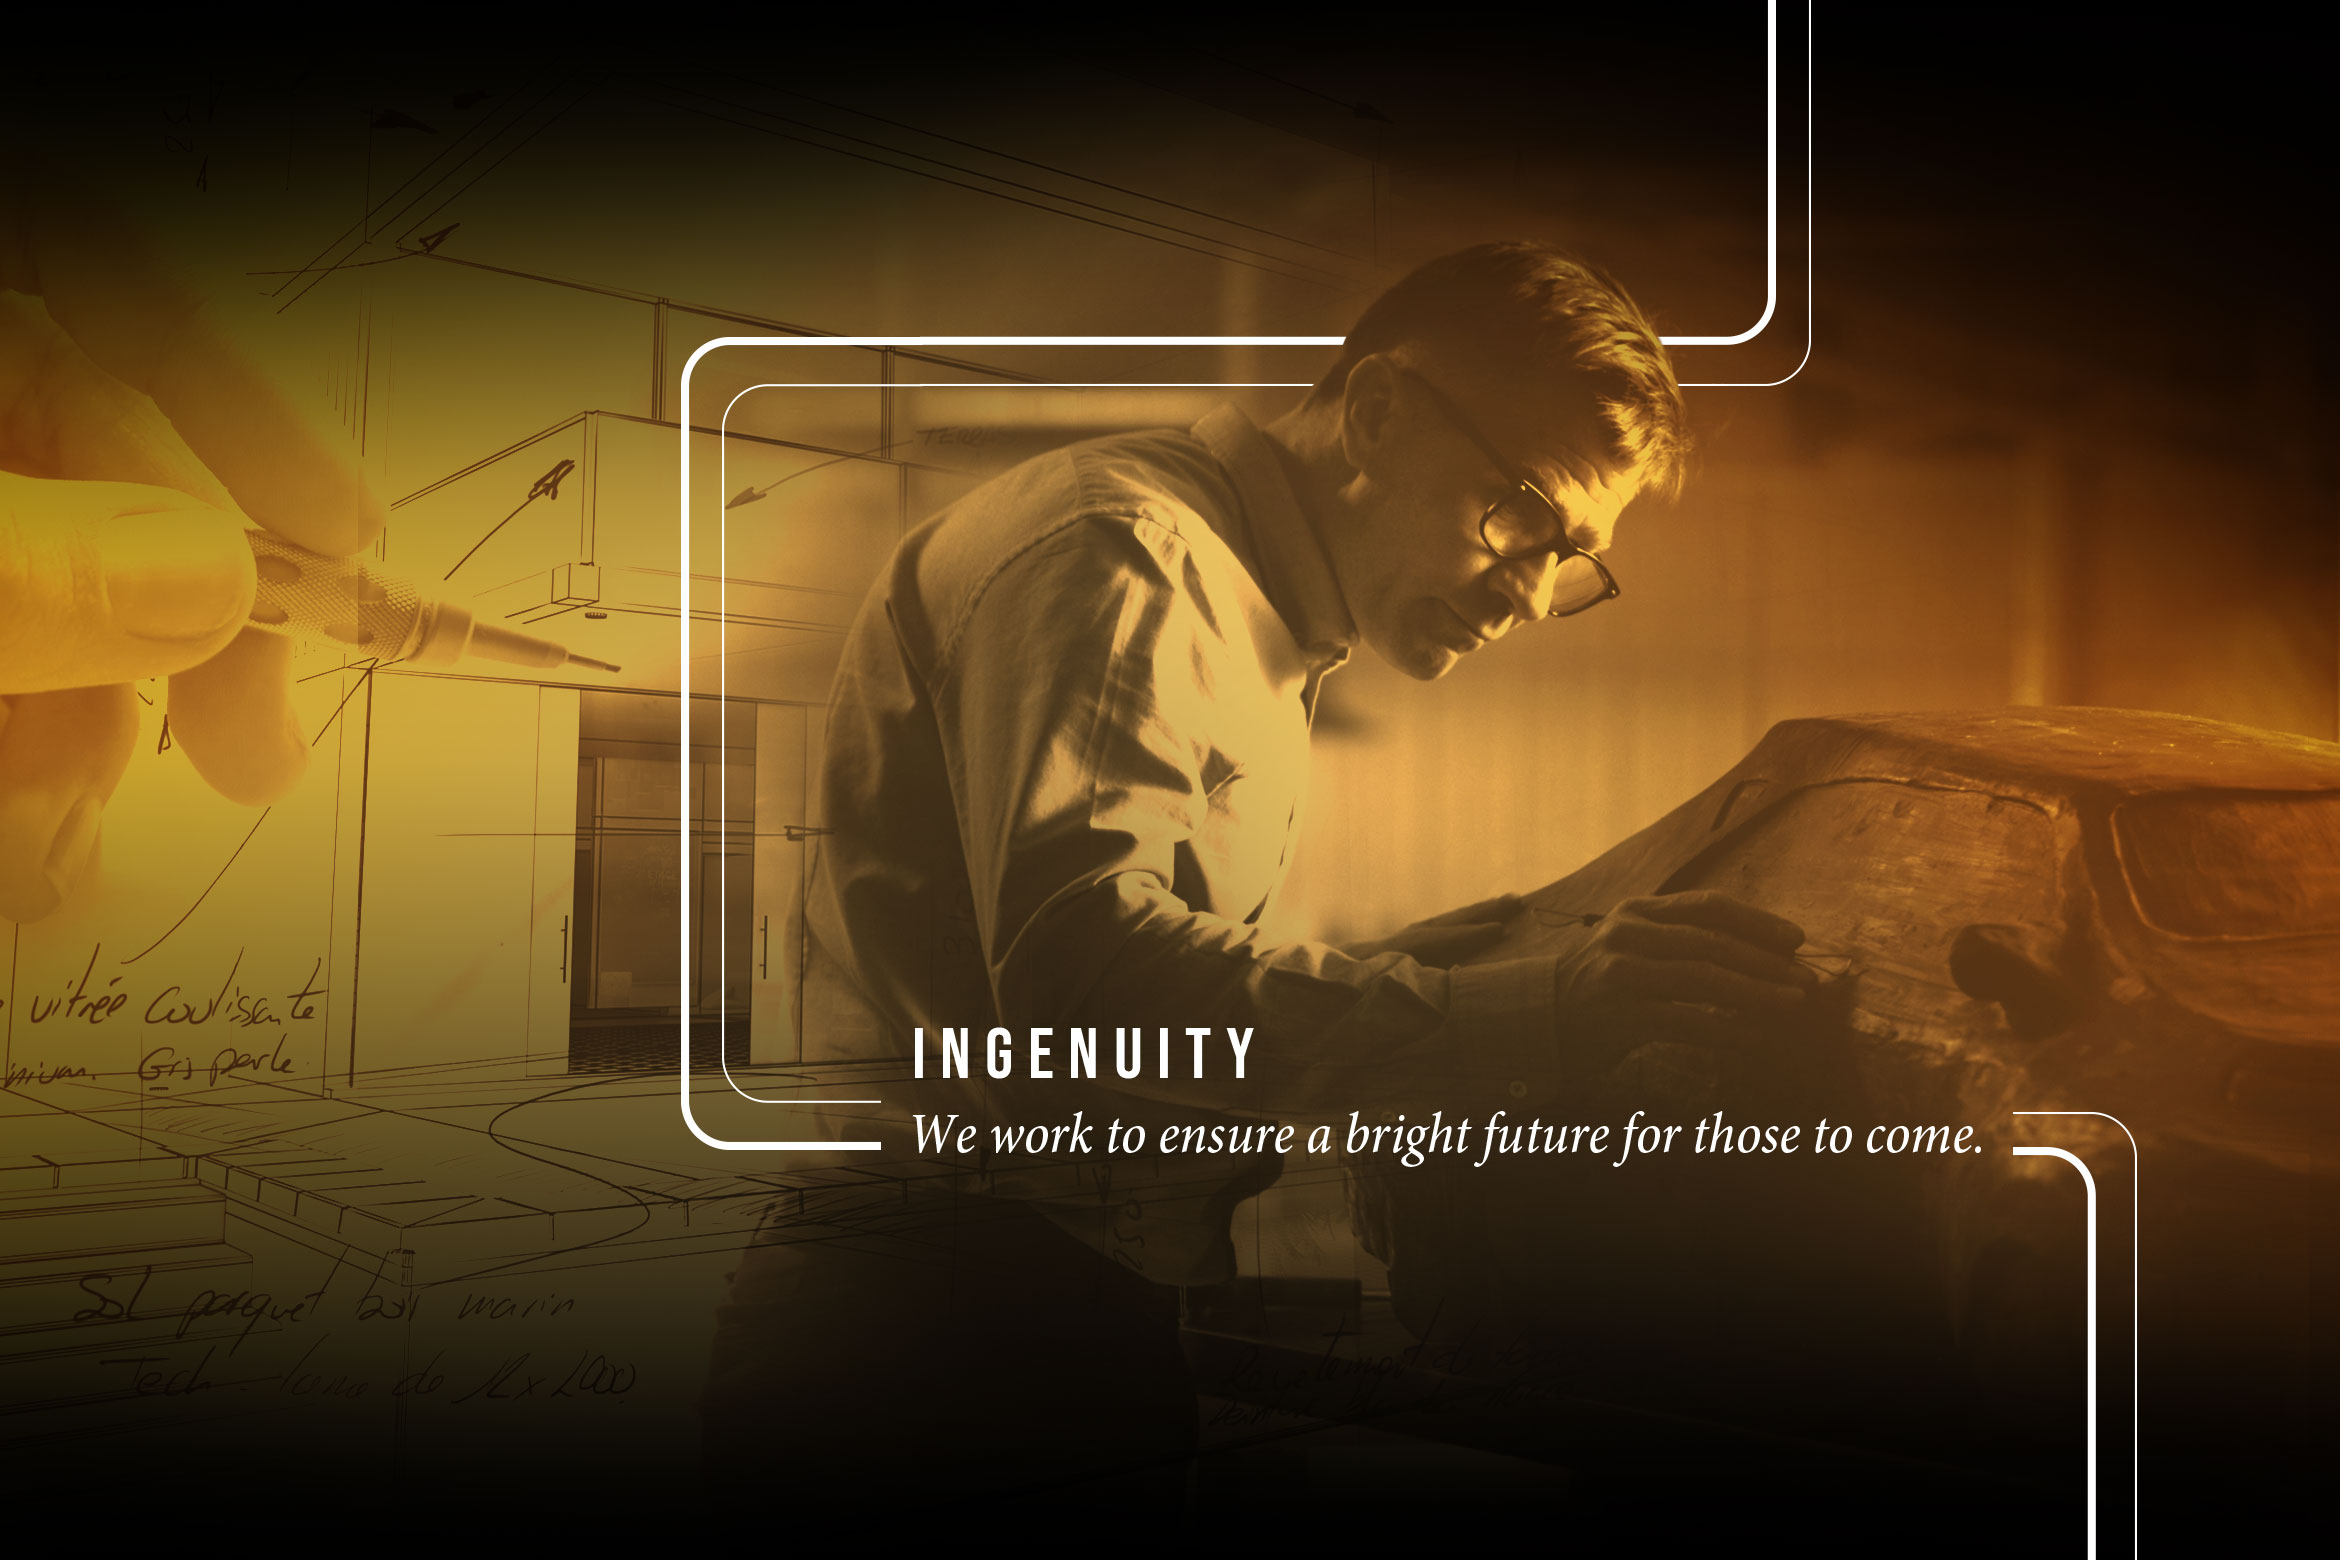 Ingenuity: We work to ensure a bright future for those to come.